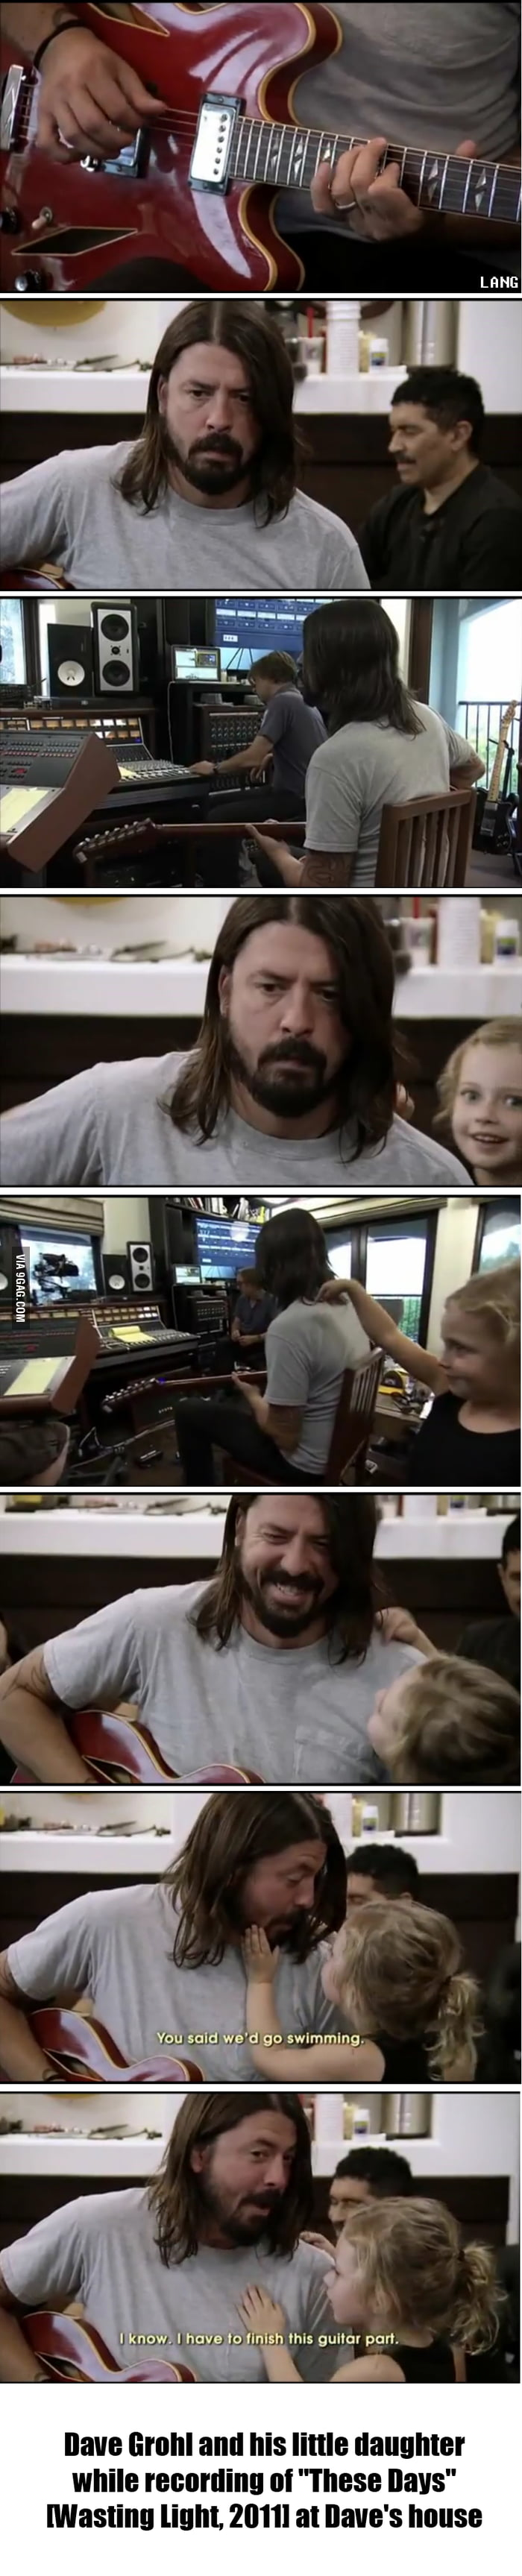 Grohl's Daughter